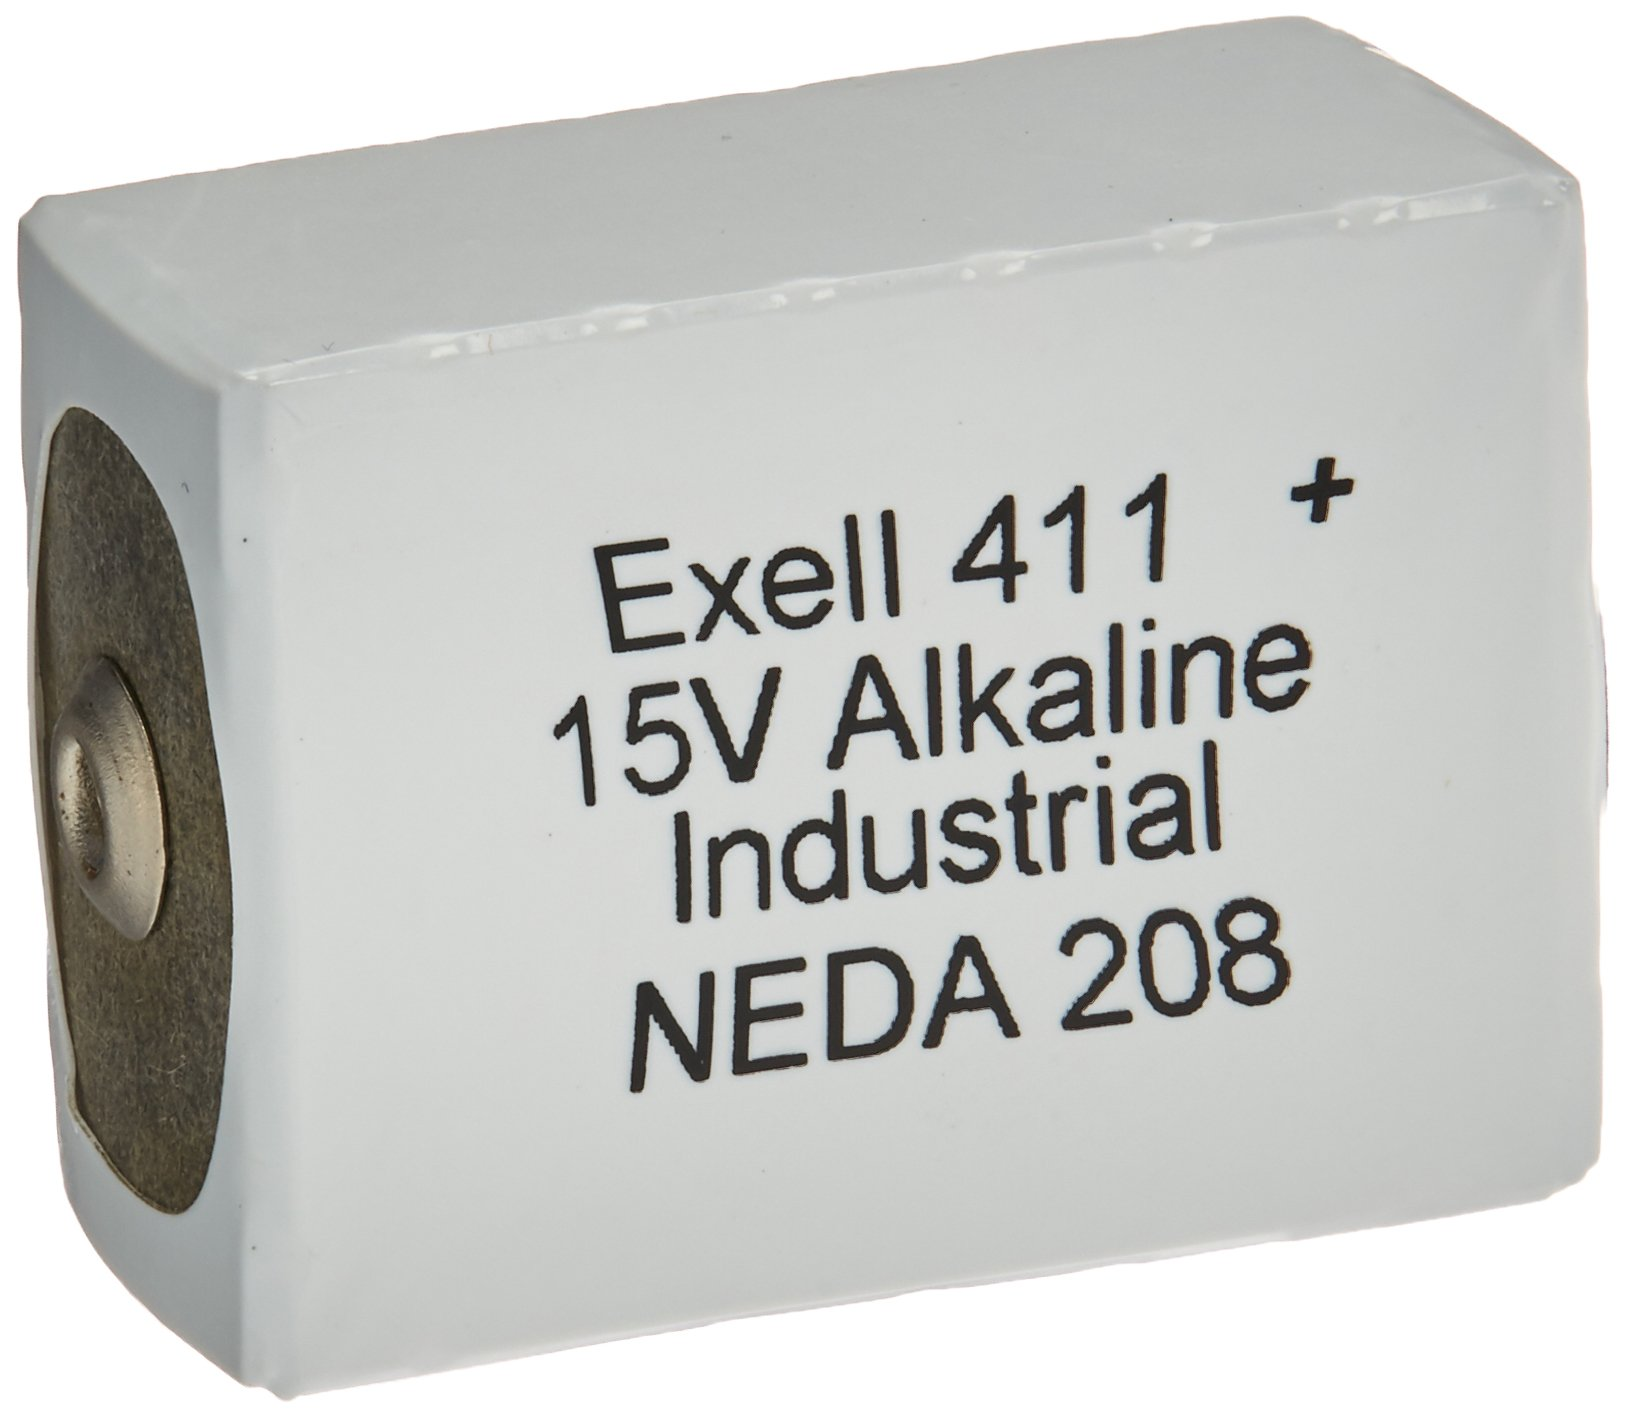 Exell Battery 411A Alkaline 15V Battery, Replaces NEDA 208, 10F20, BLR121, White/Silver